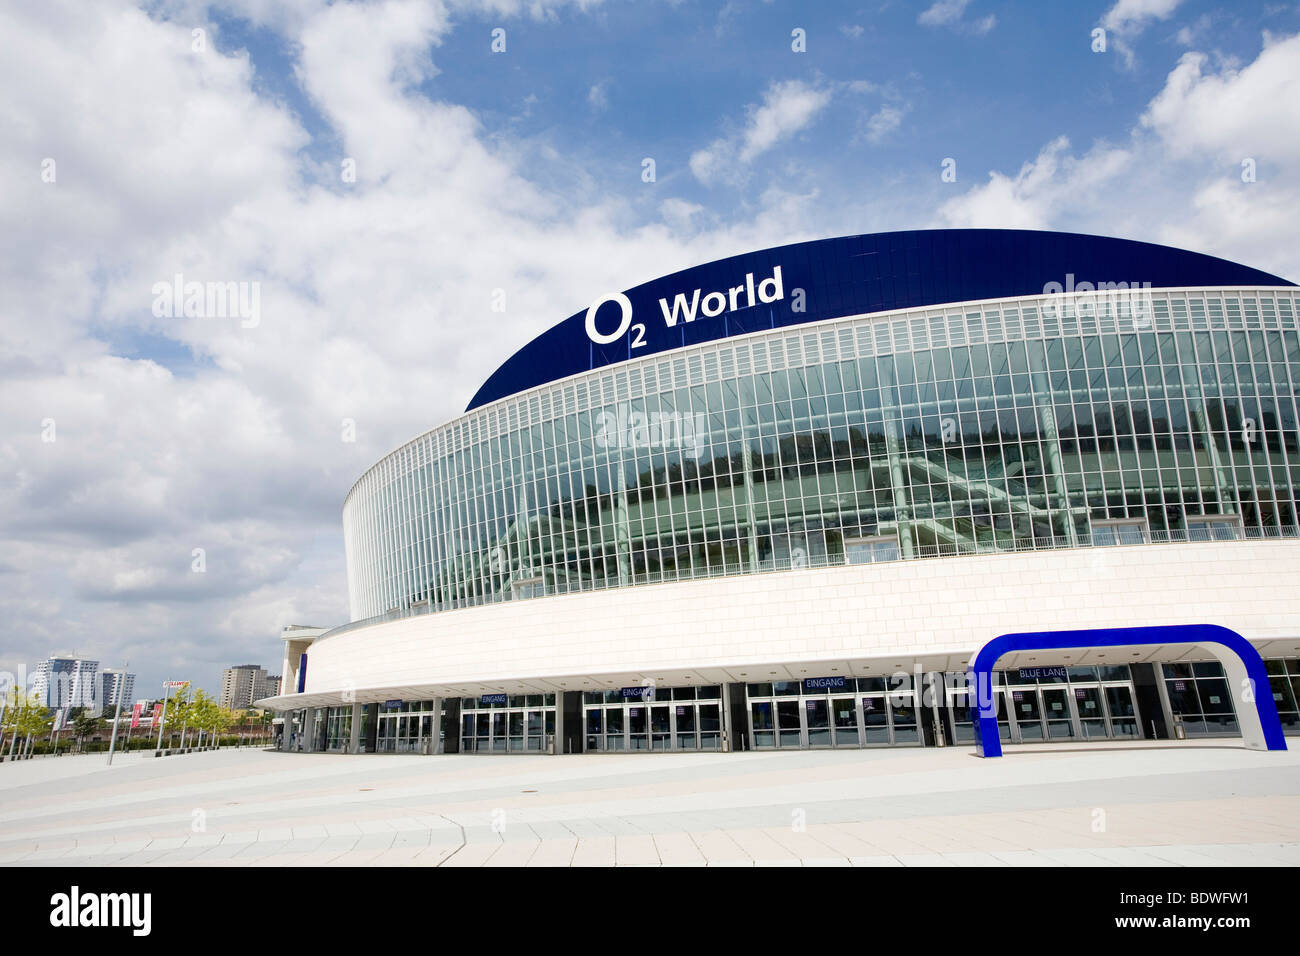 O2 World, O2 Arena, Berlin, Germany, Europe - Stock Image